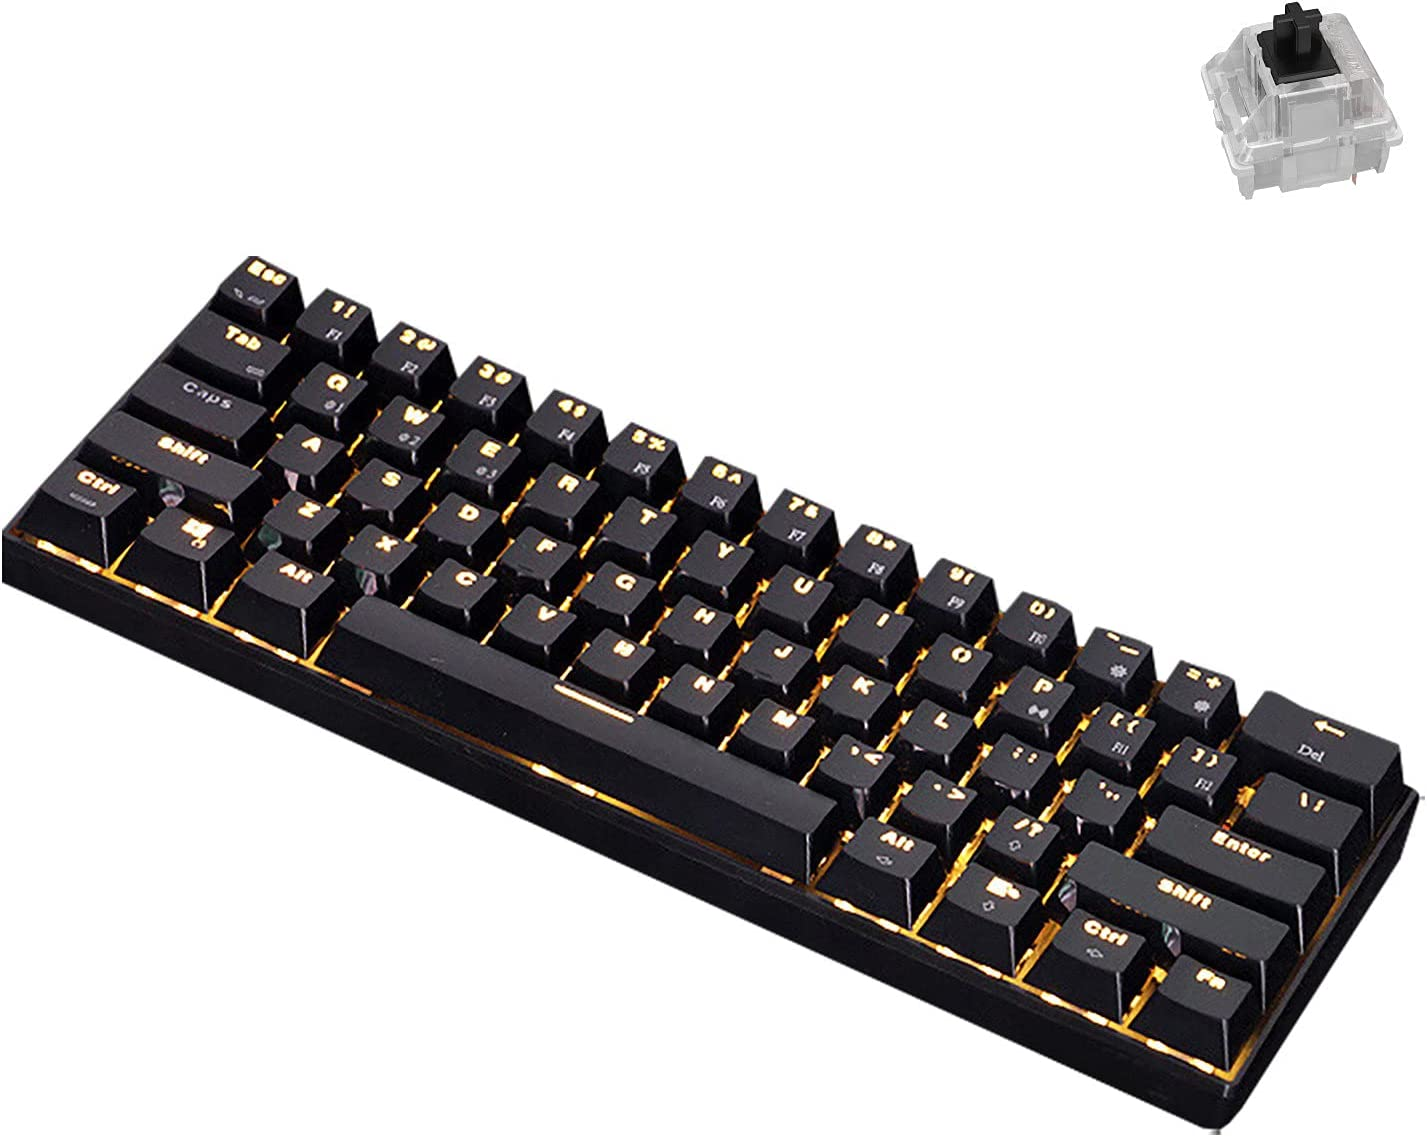 KOqwez33 mart Portable Advanced Keyboard Our shop OFFers the best service Notebook Computer RK61 for